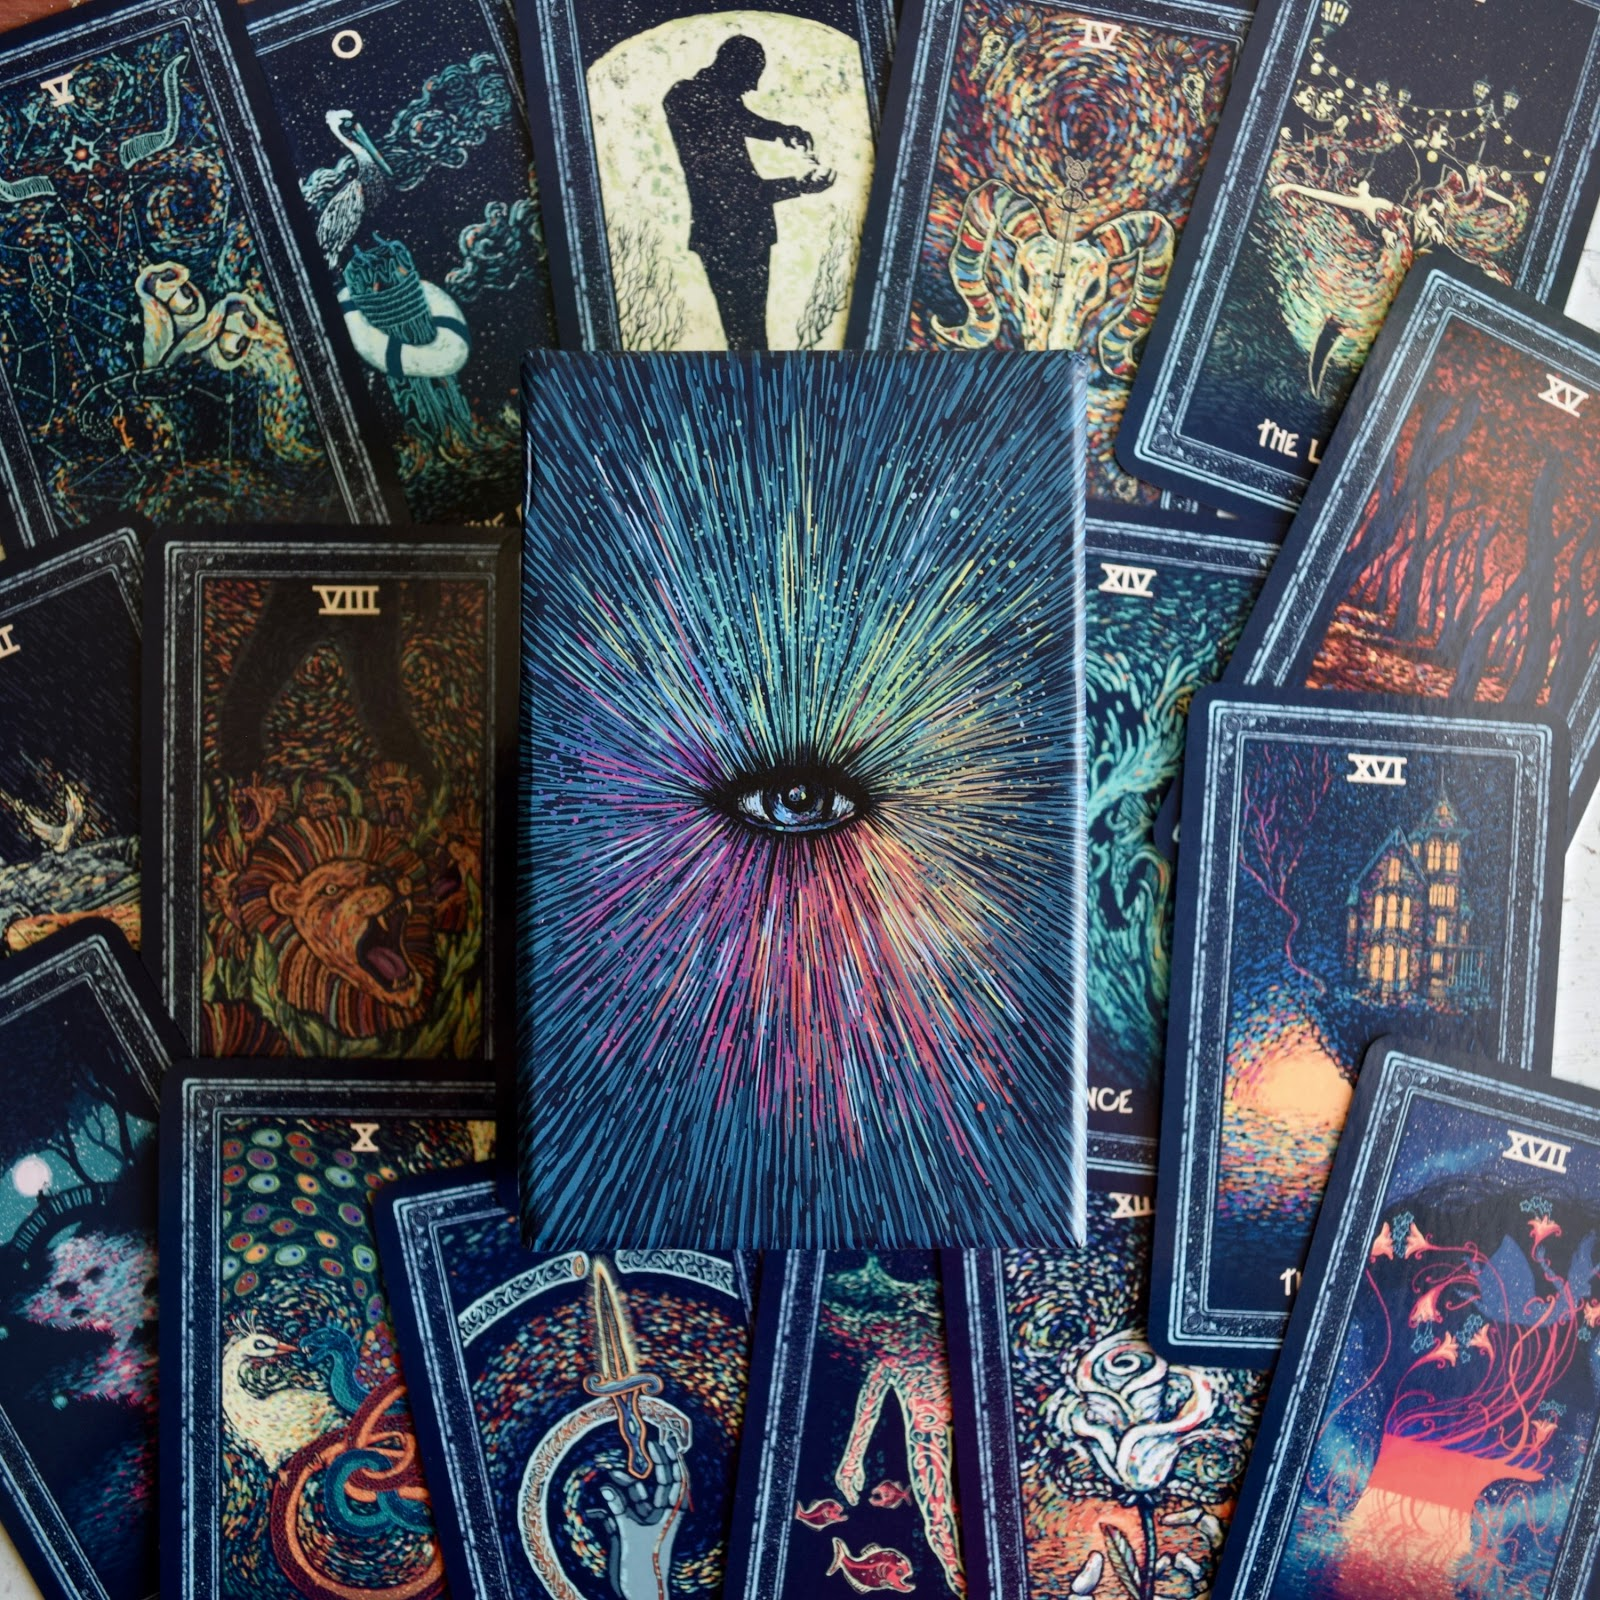 The box of the Prisma Visions Tarot Deck surrounded by blue tarot cards with vibrant images.